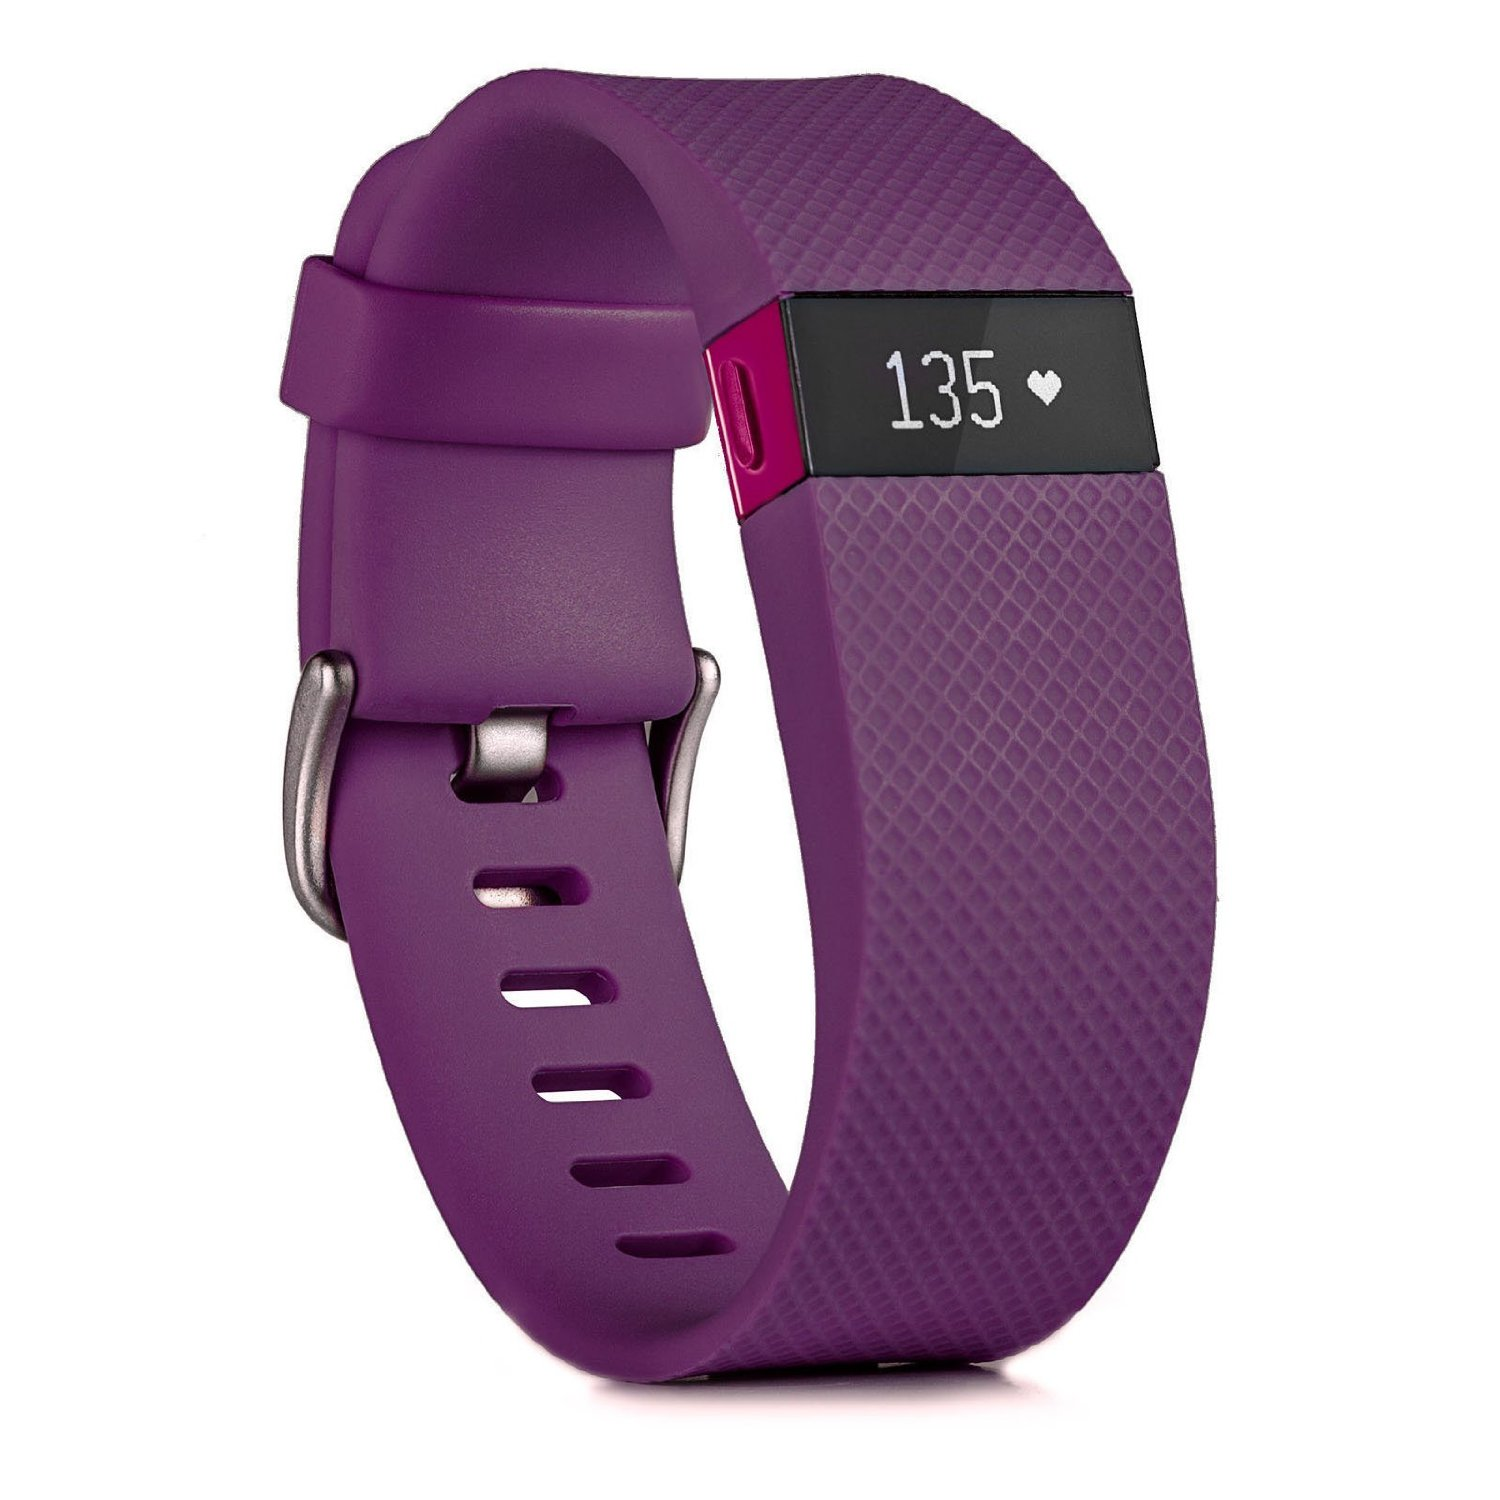 Plum Fitbit Charge HR Activity, Heart Rate + Sleep Wristband